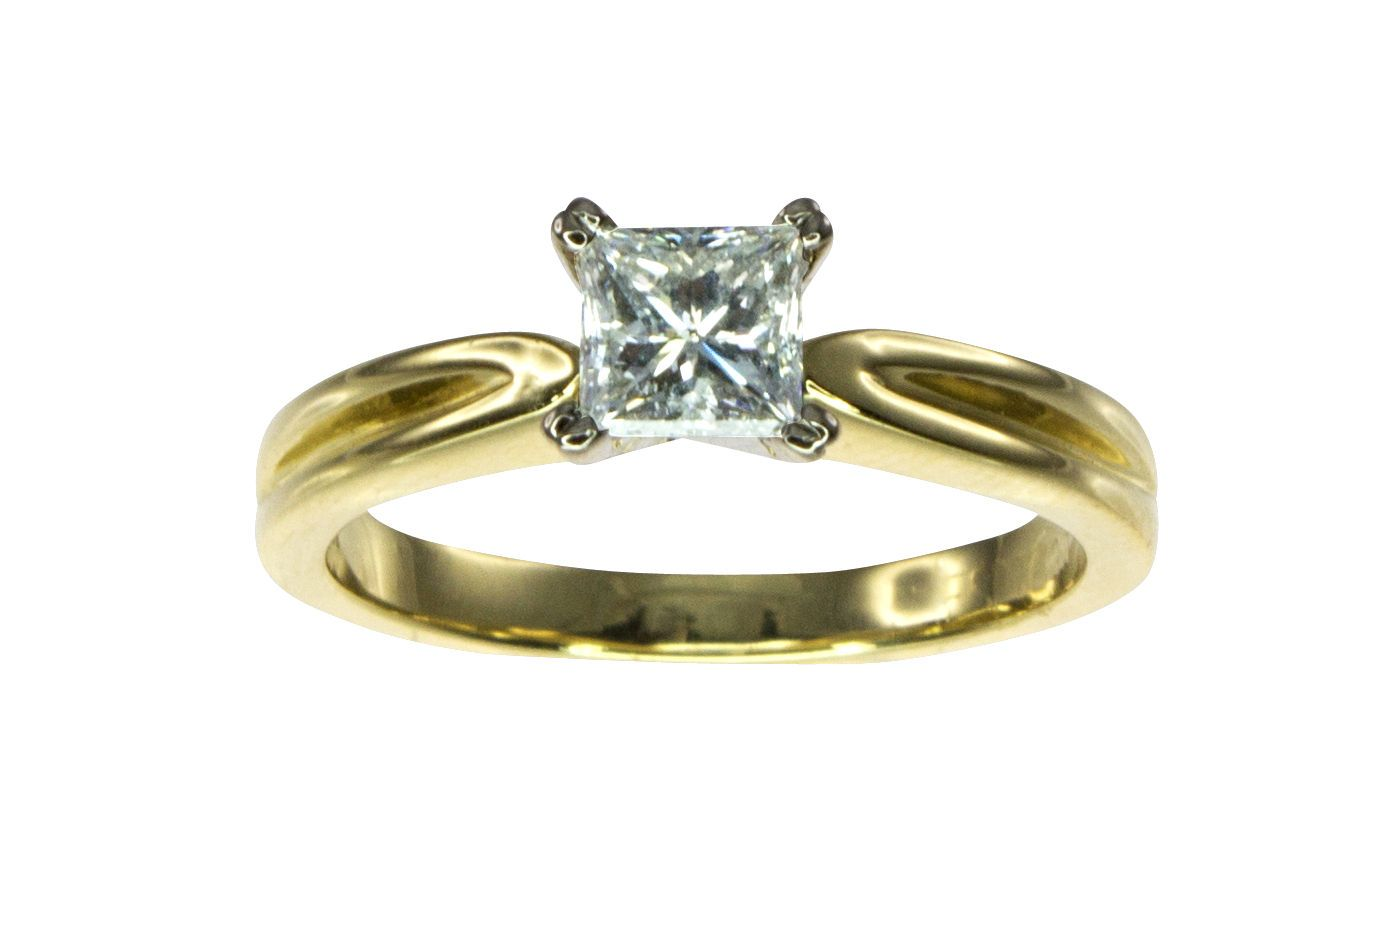 18ct Yellow Gold 0.47ct Solitaire Diamond Engagement Ring